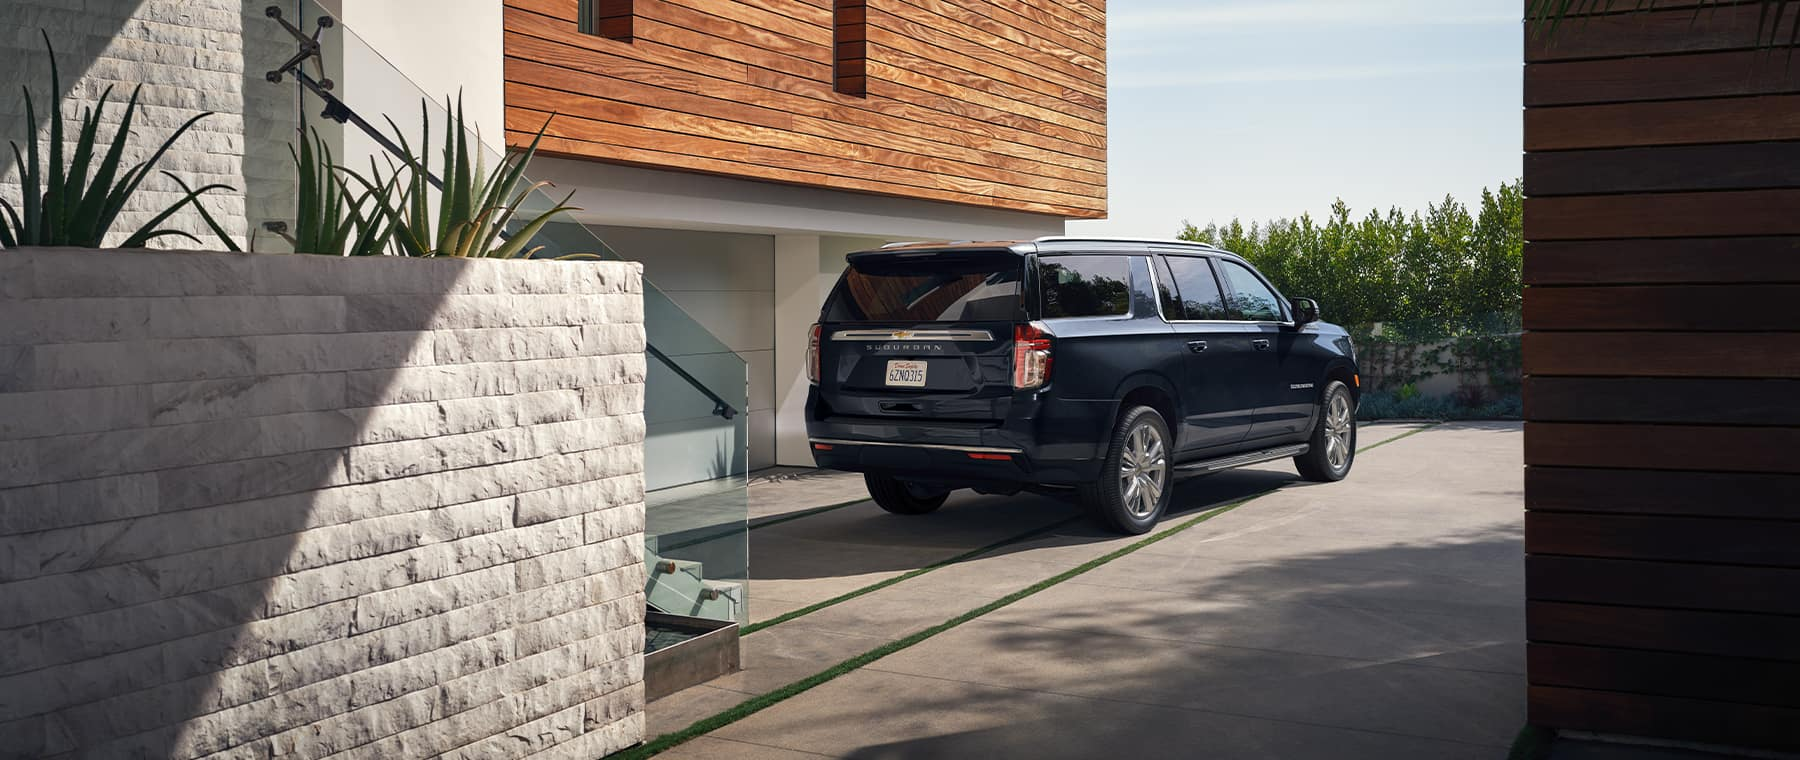 2021 Chevrolet Suburban in front of a luxurious home